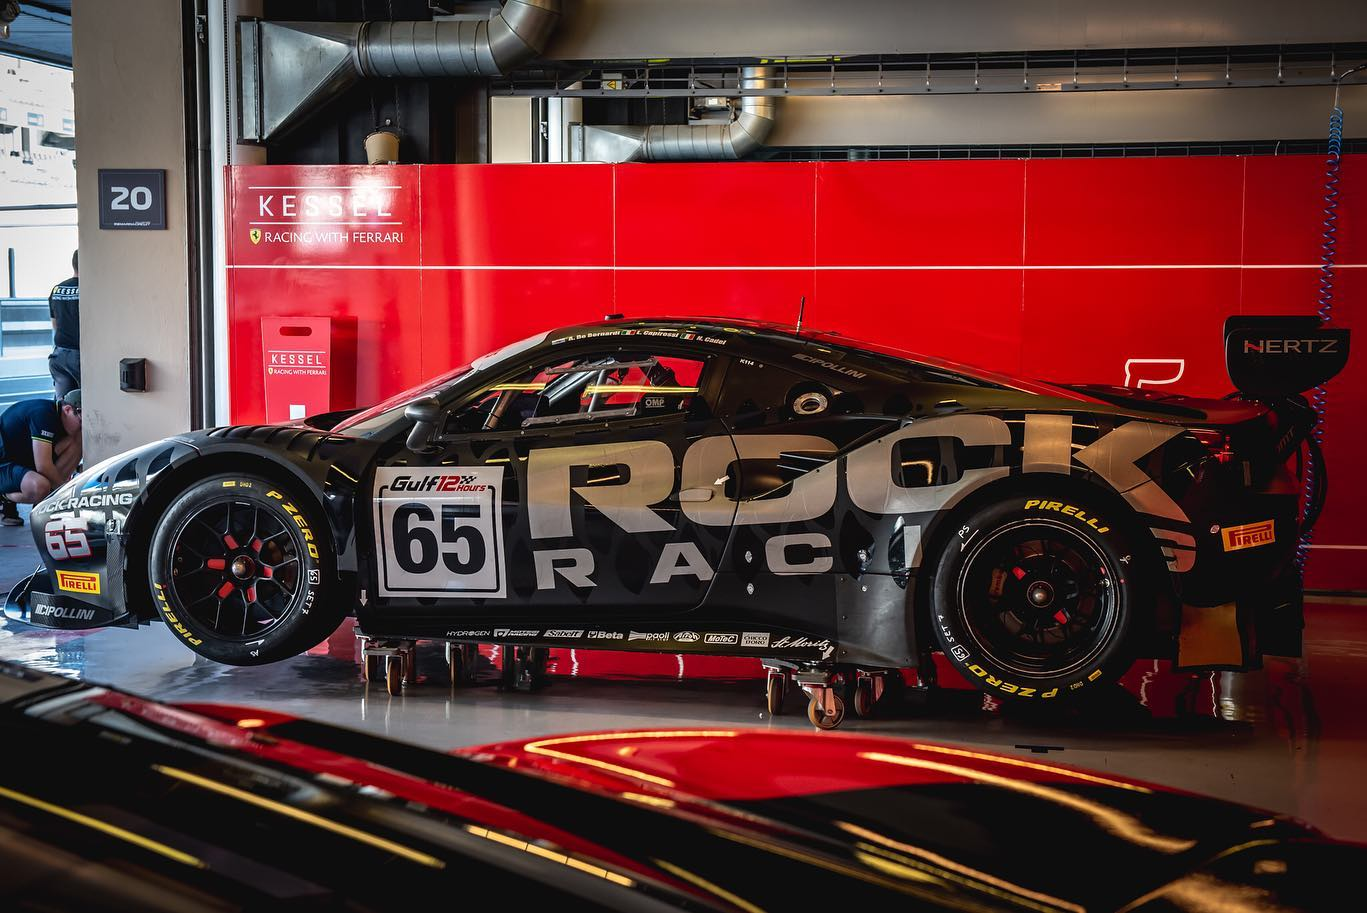 https://lnx.mirkone.it/wp-content/uploads/2019/12/mirk_One-abu-dhabi-rock-racing-5.jpg